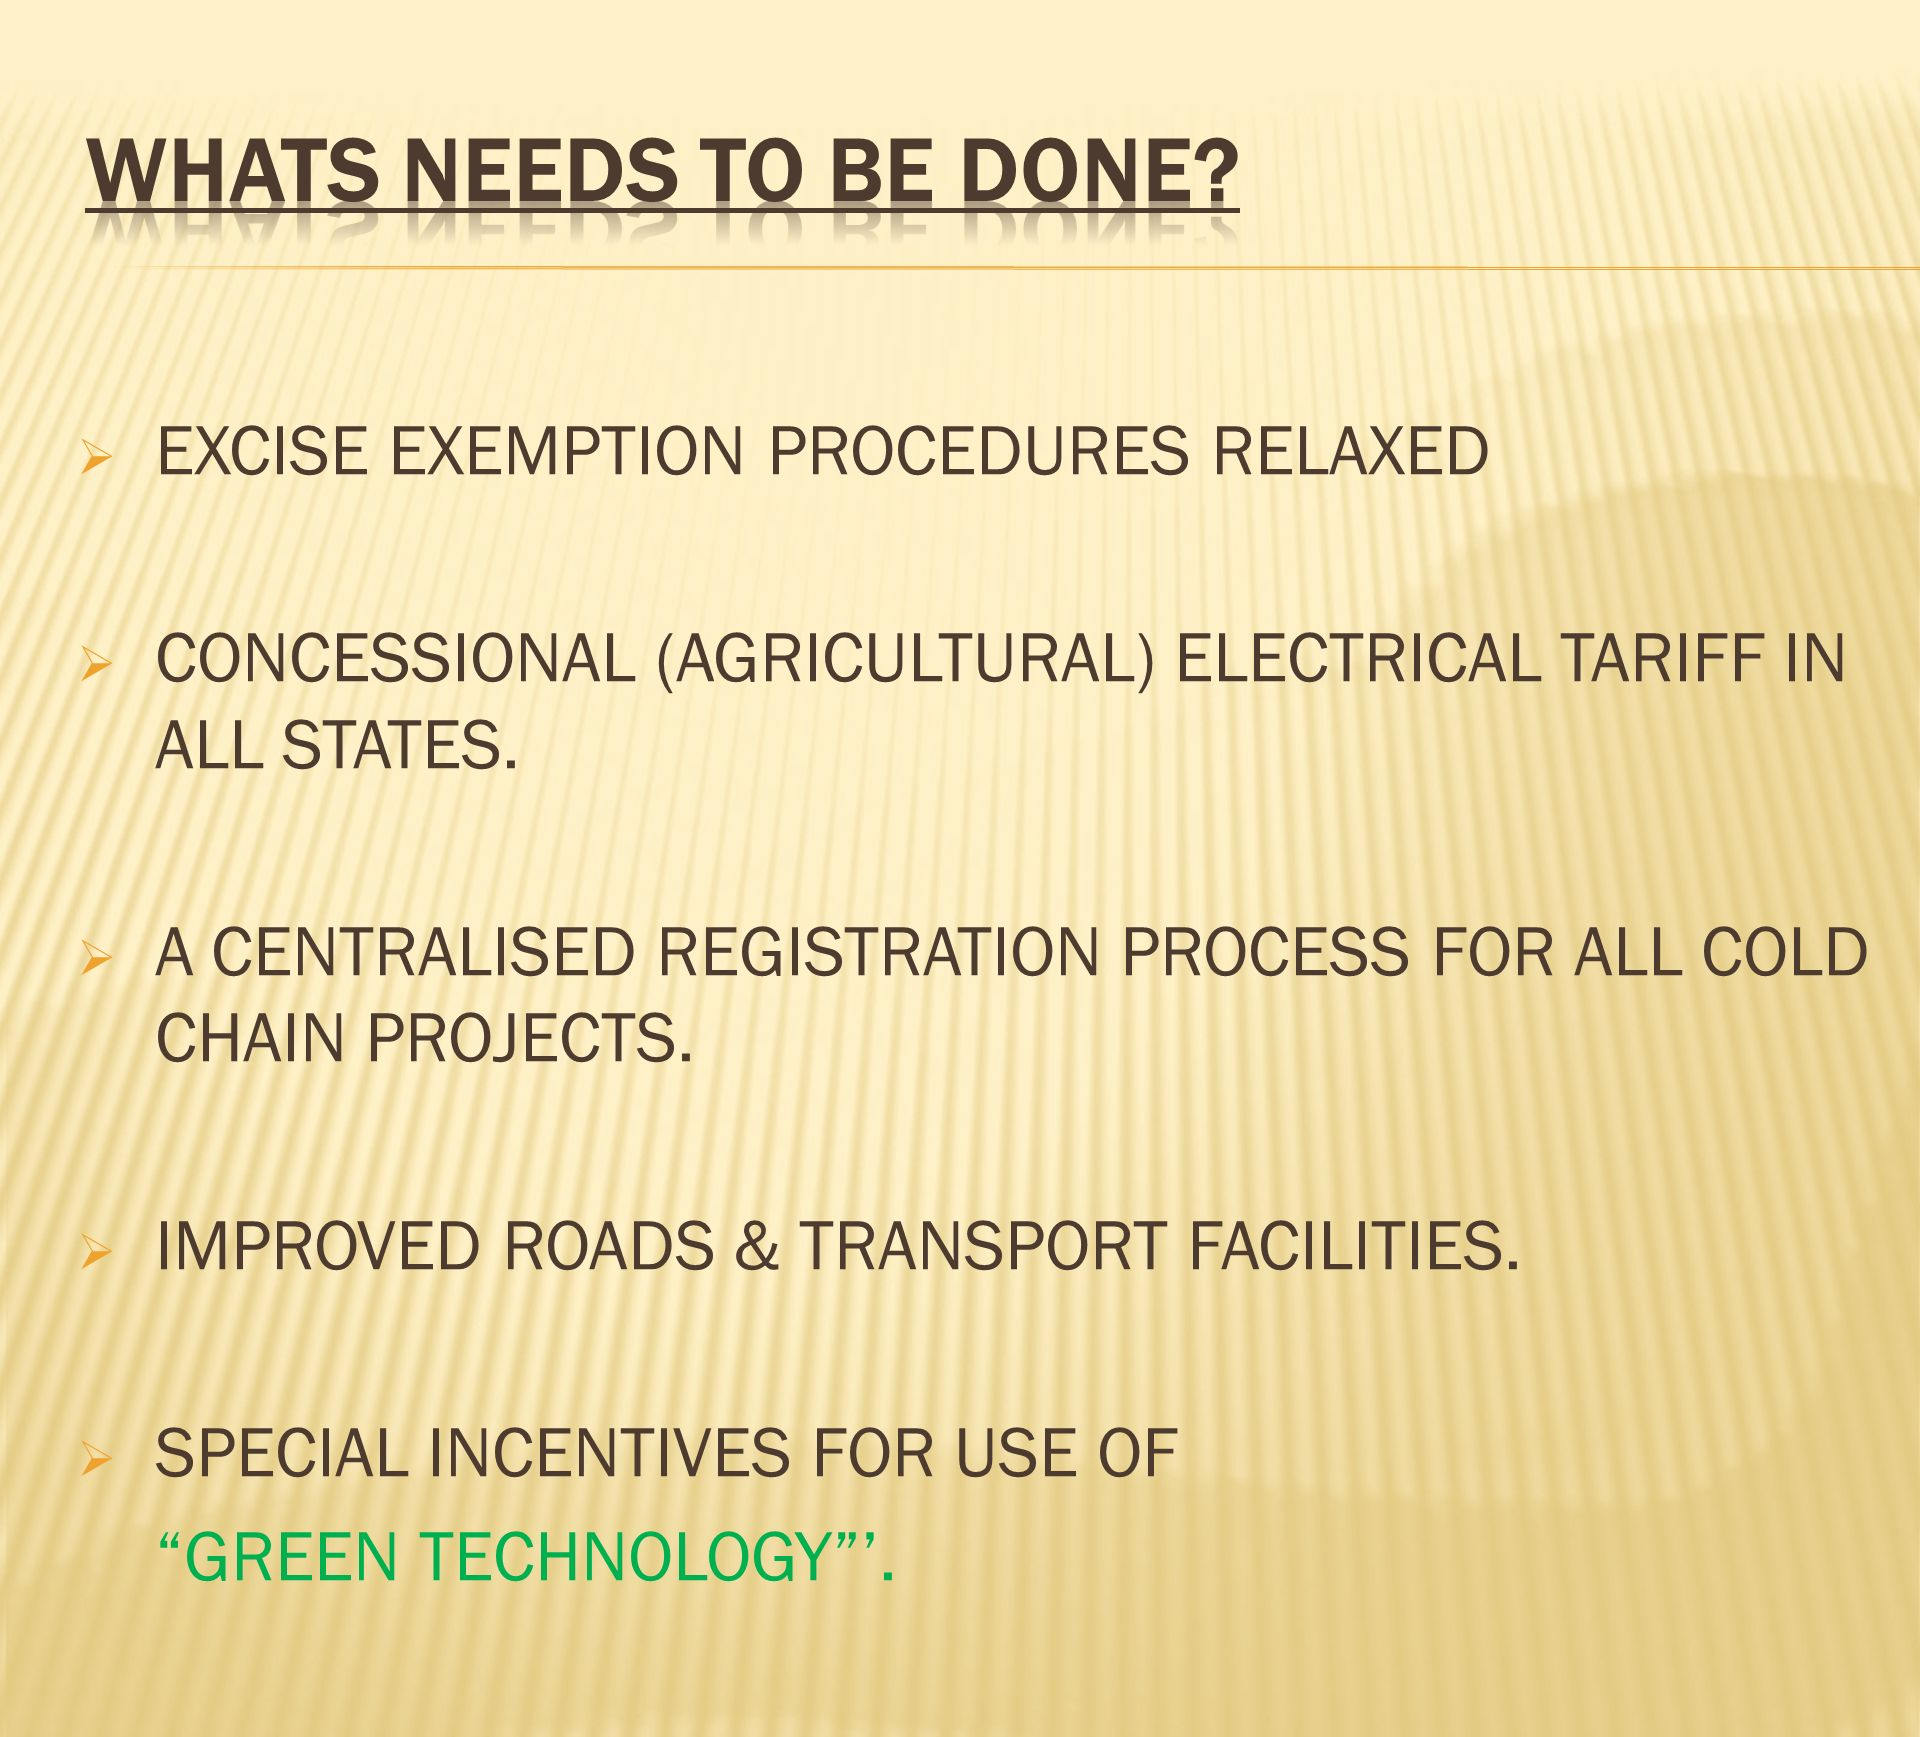 WHATS NEEDS TO BE DONE EXCISE EXEMPTION PROCEDURES RELAXED